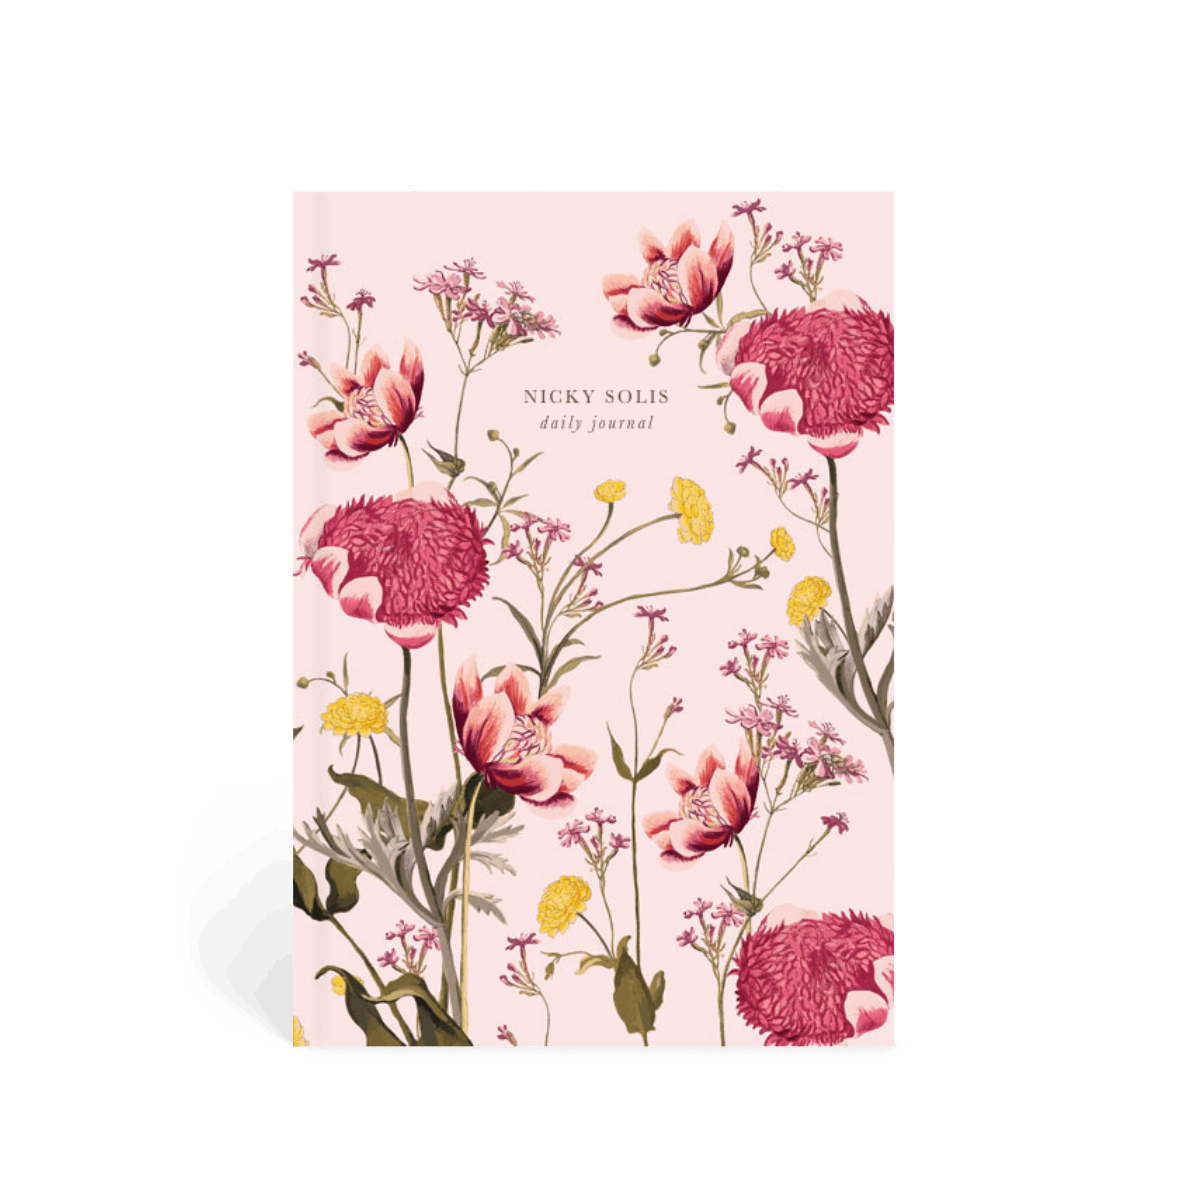 Https%3a%2f%2fwww.papier.com%2fproduct image%2f90356%2f25%2fpink botanical 22593 front 1570097377.png?ixlib=rb 1.1